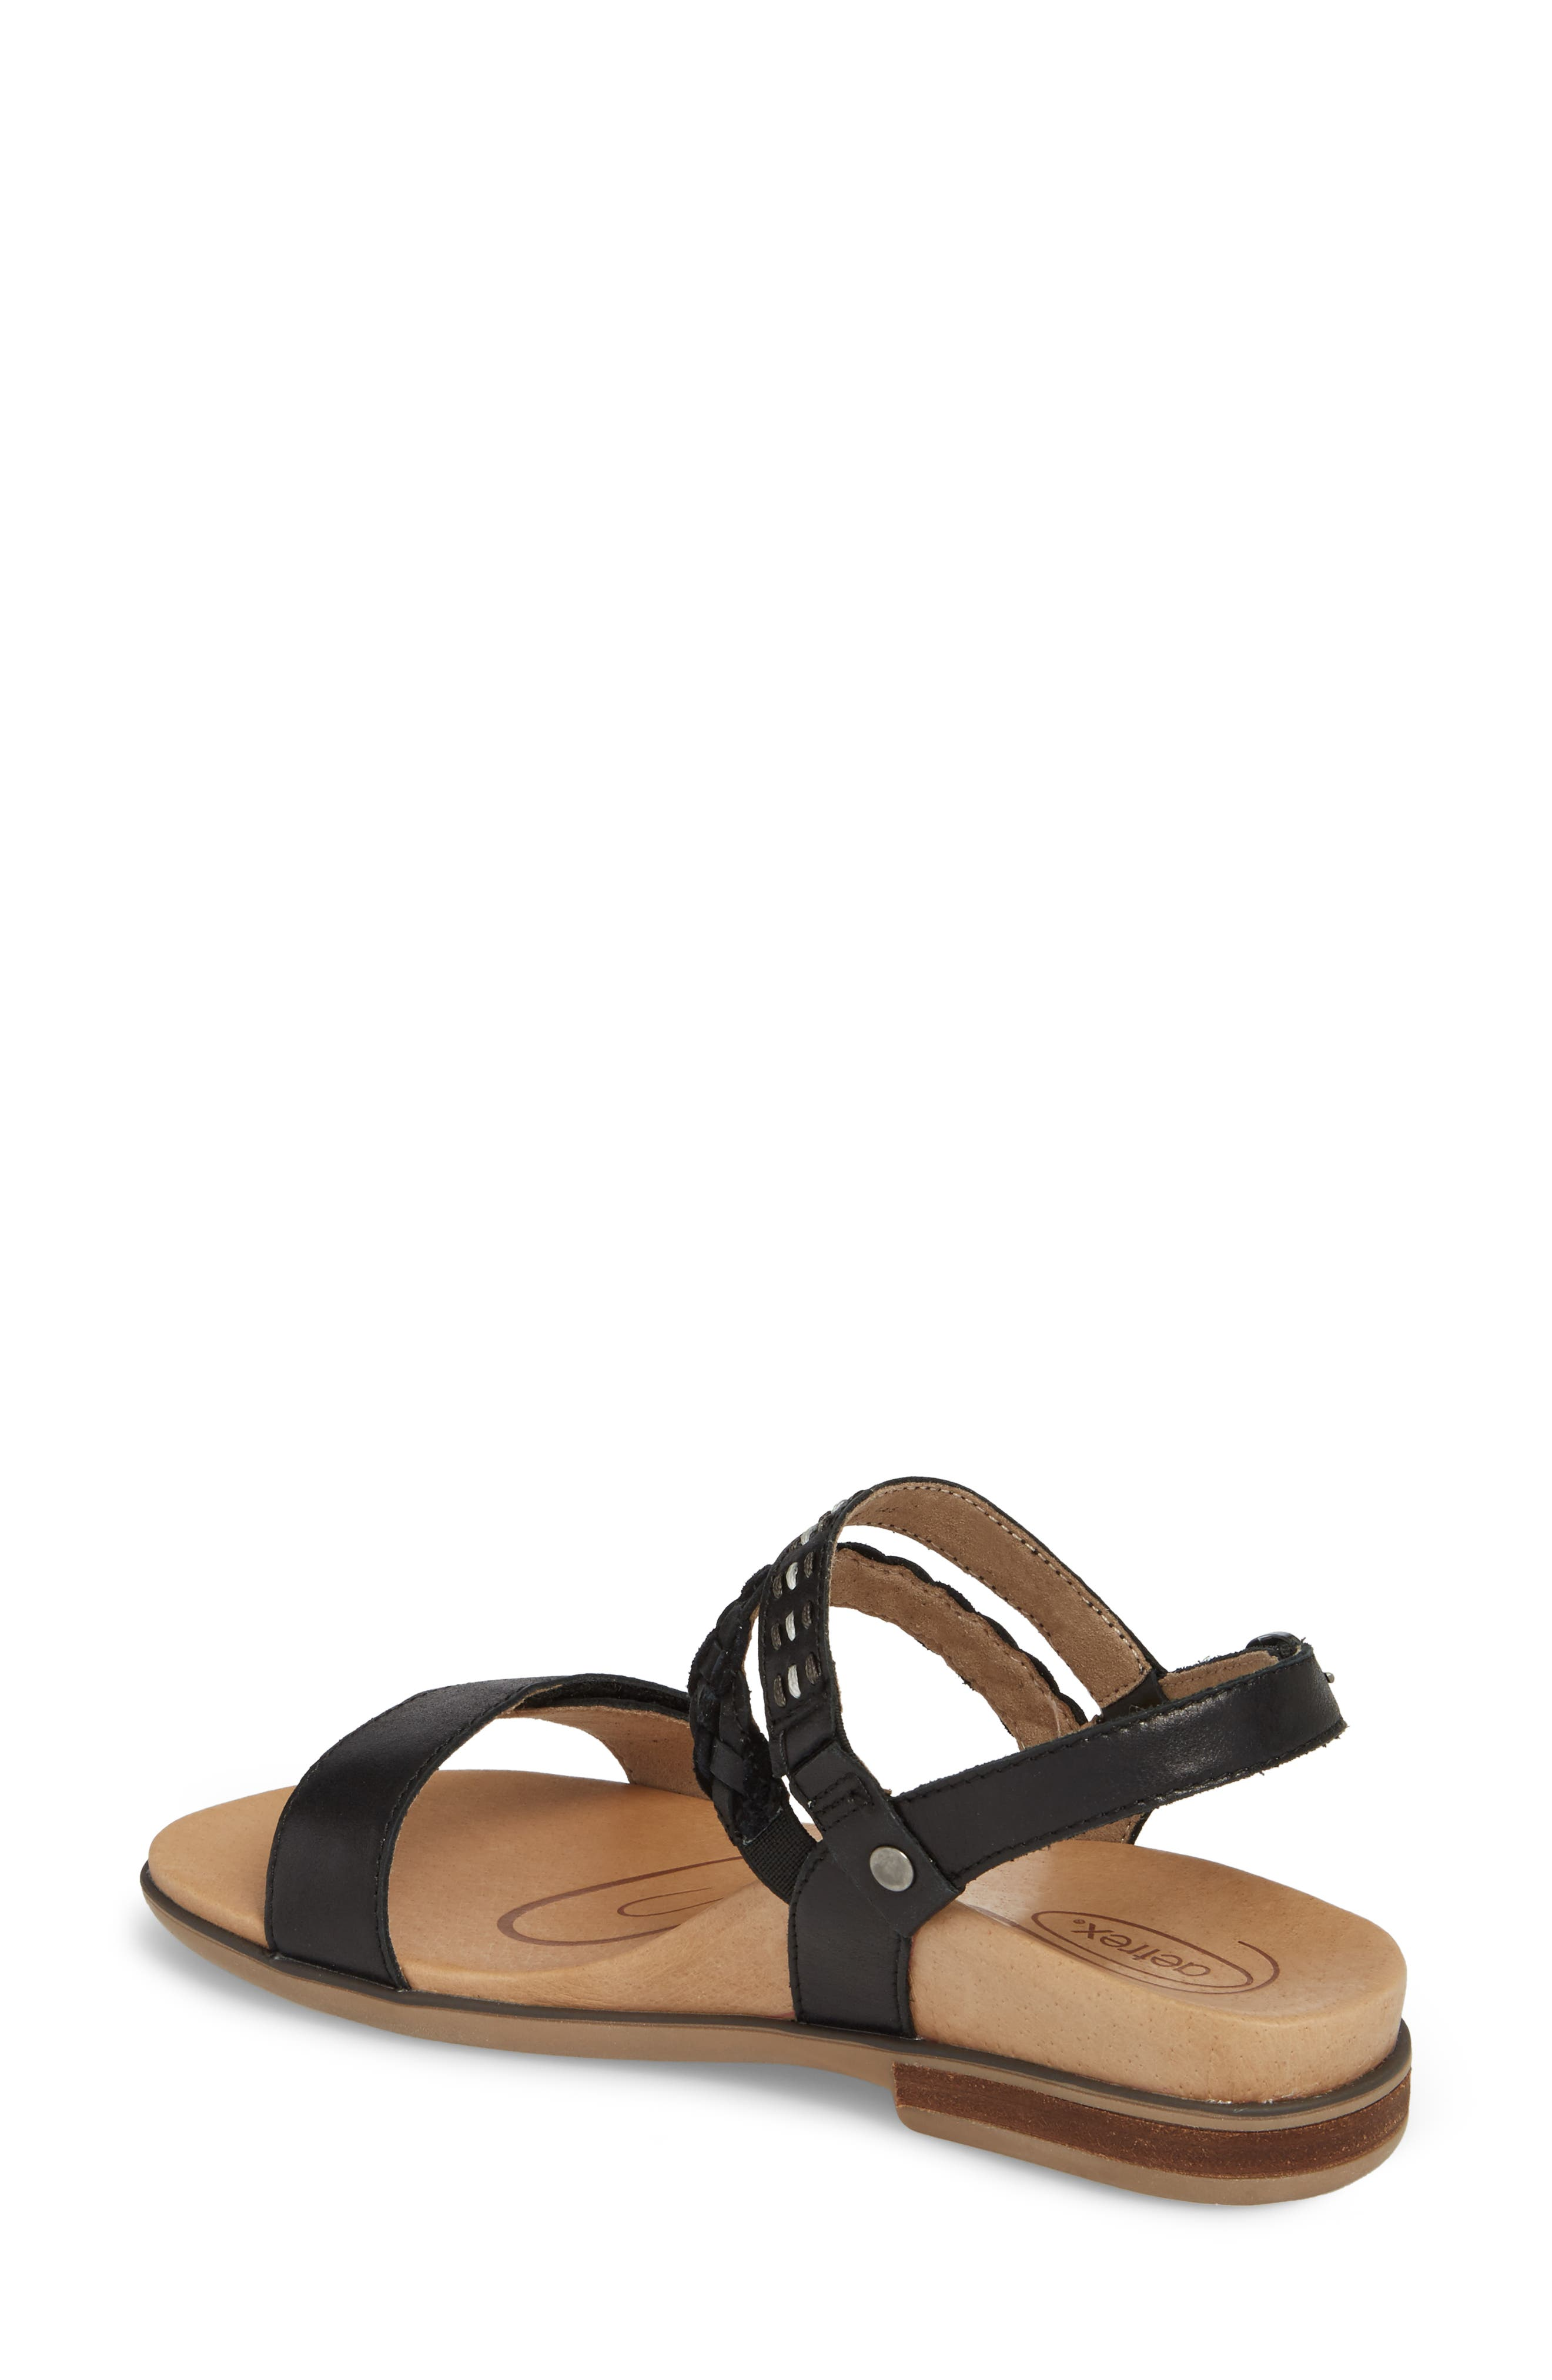 AETREX, Celeste Sandal, Alternate thumbnail 2, color, BLACK LEATHER